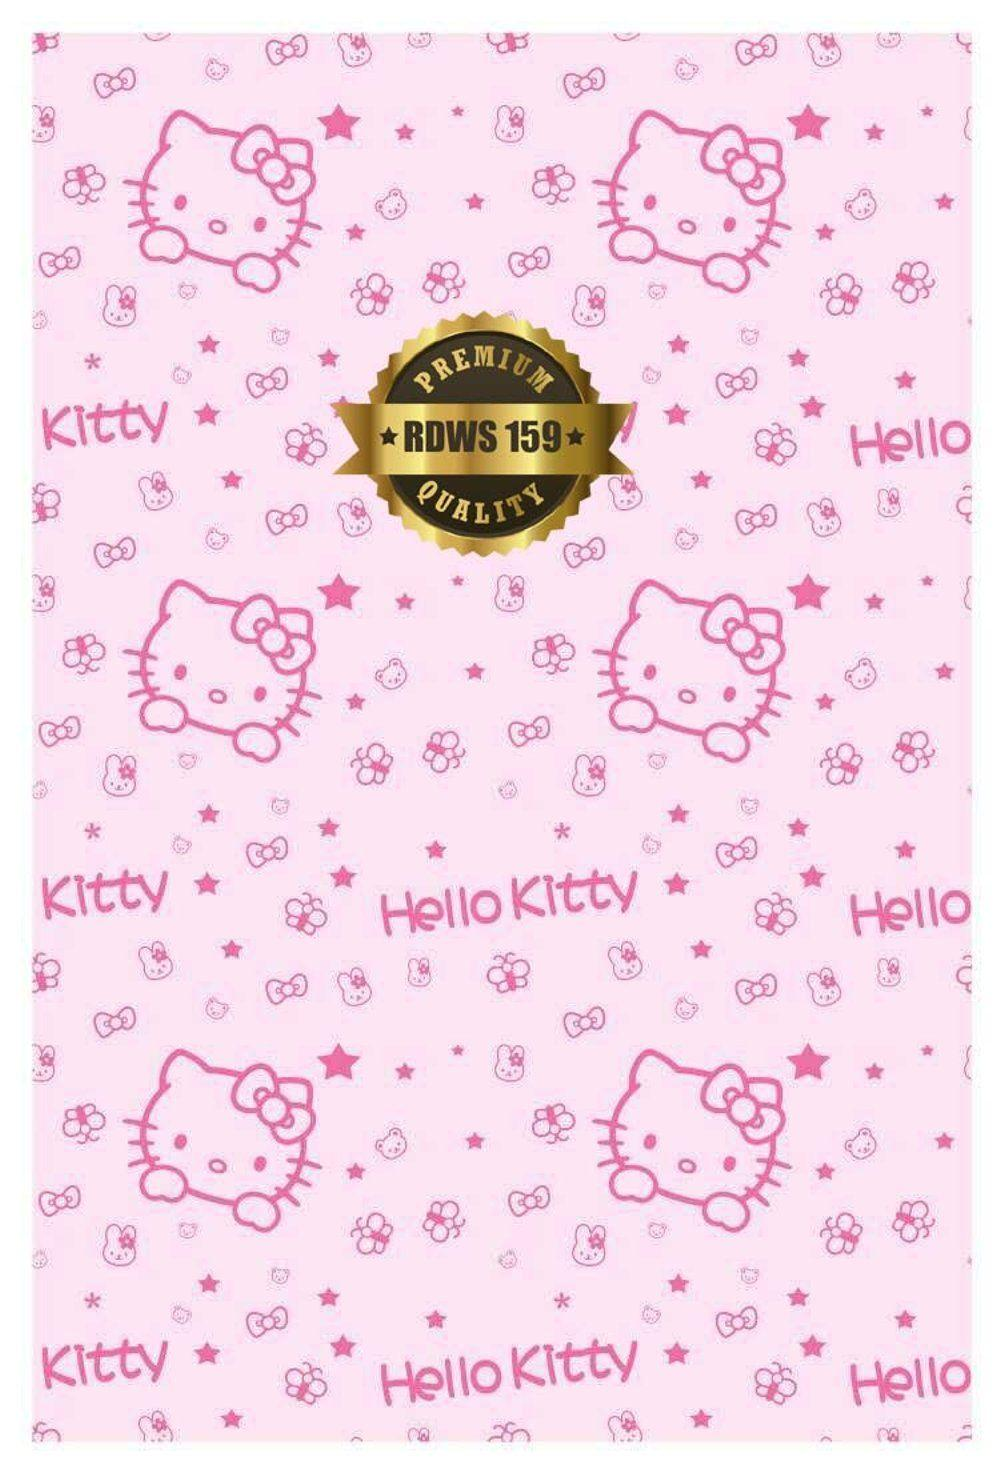 Jual PROMO Wallpapers Dinding lucu Hello Kitty Pink rdws